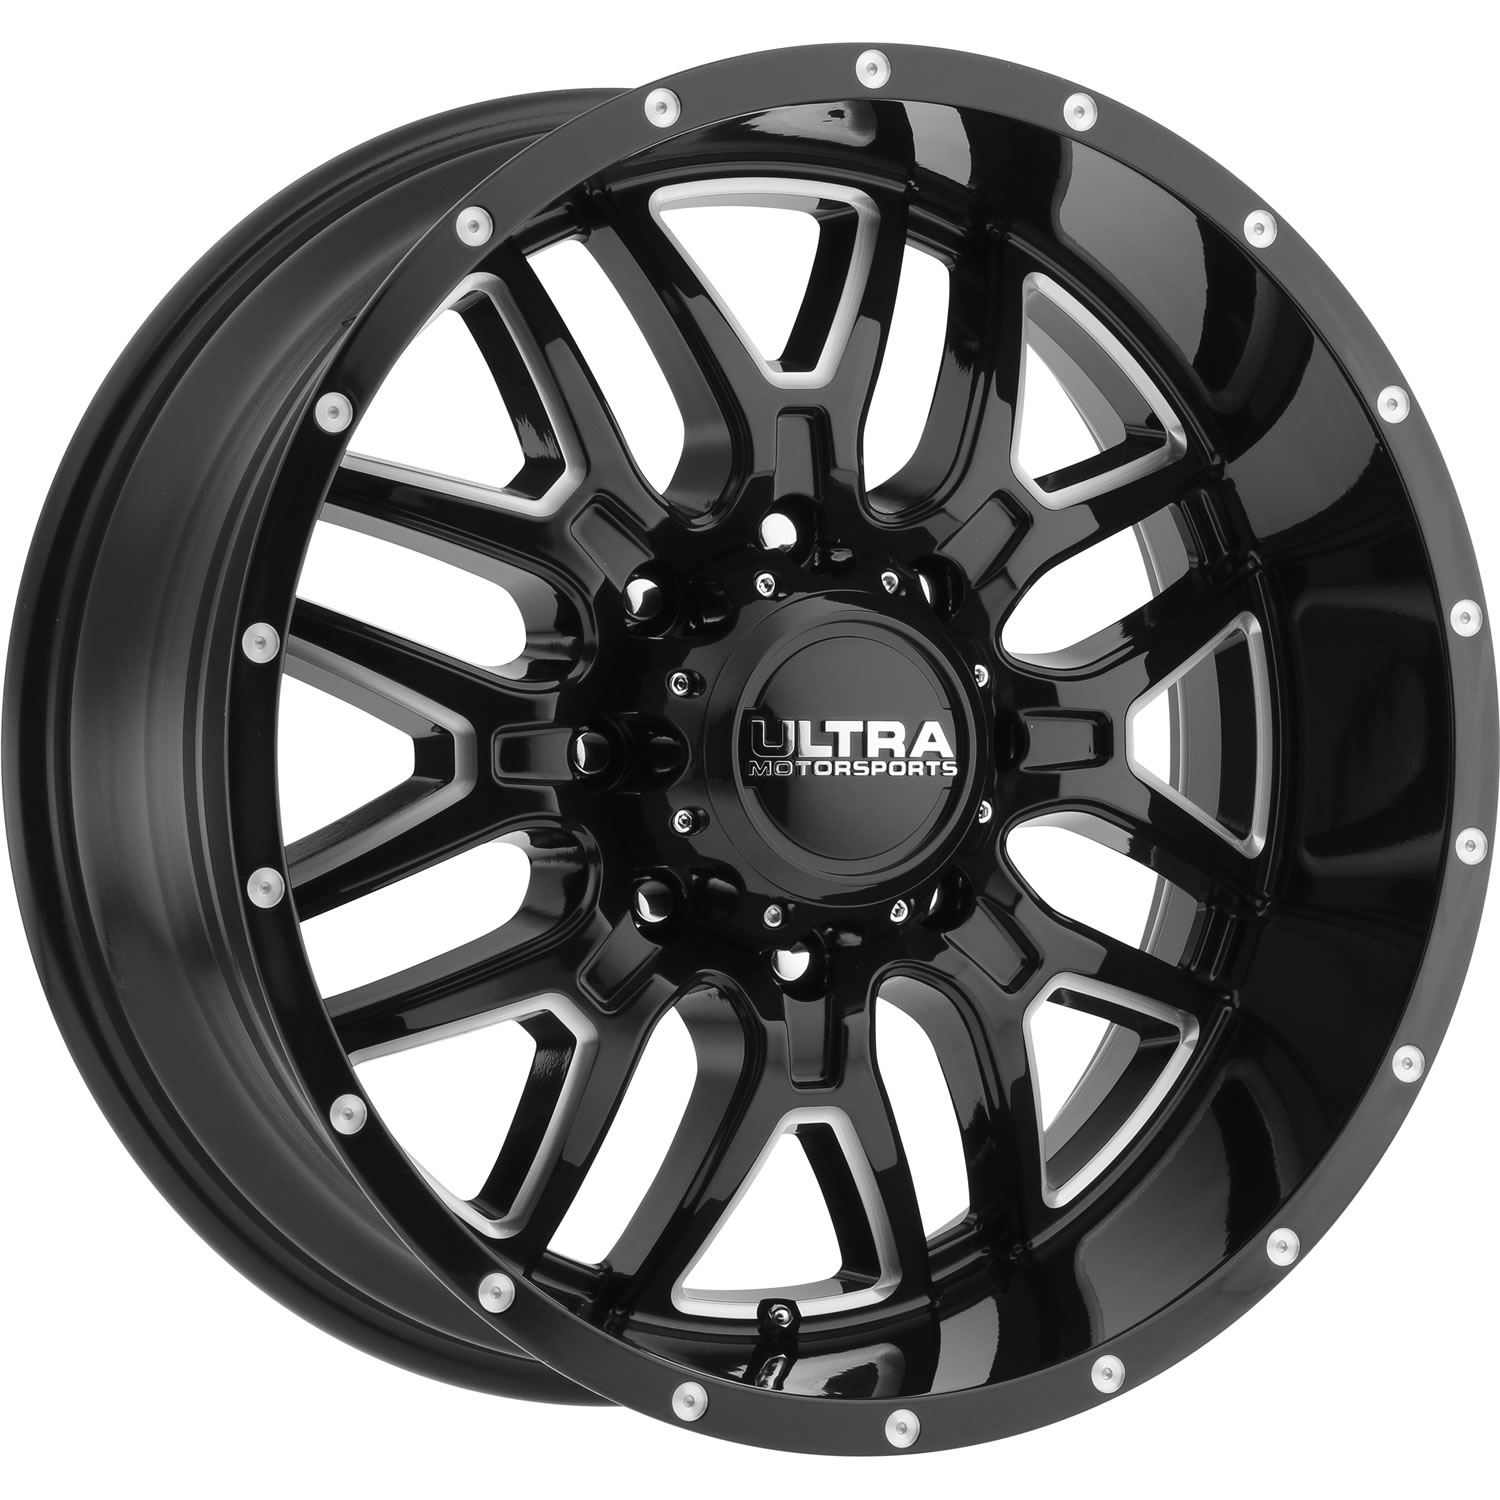 Ultra Hunter 17x9 +12mm | 203 7982BM+12